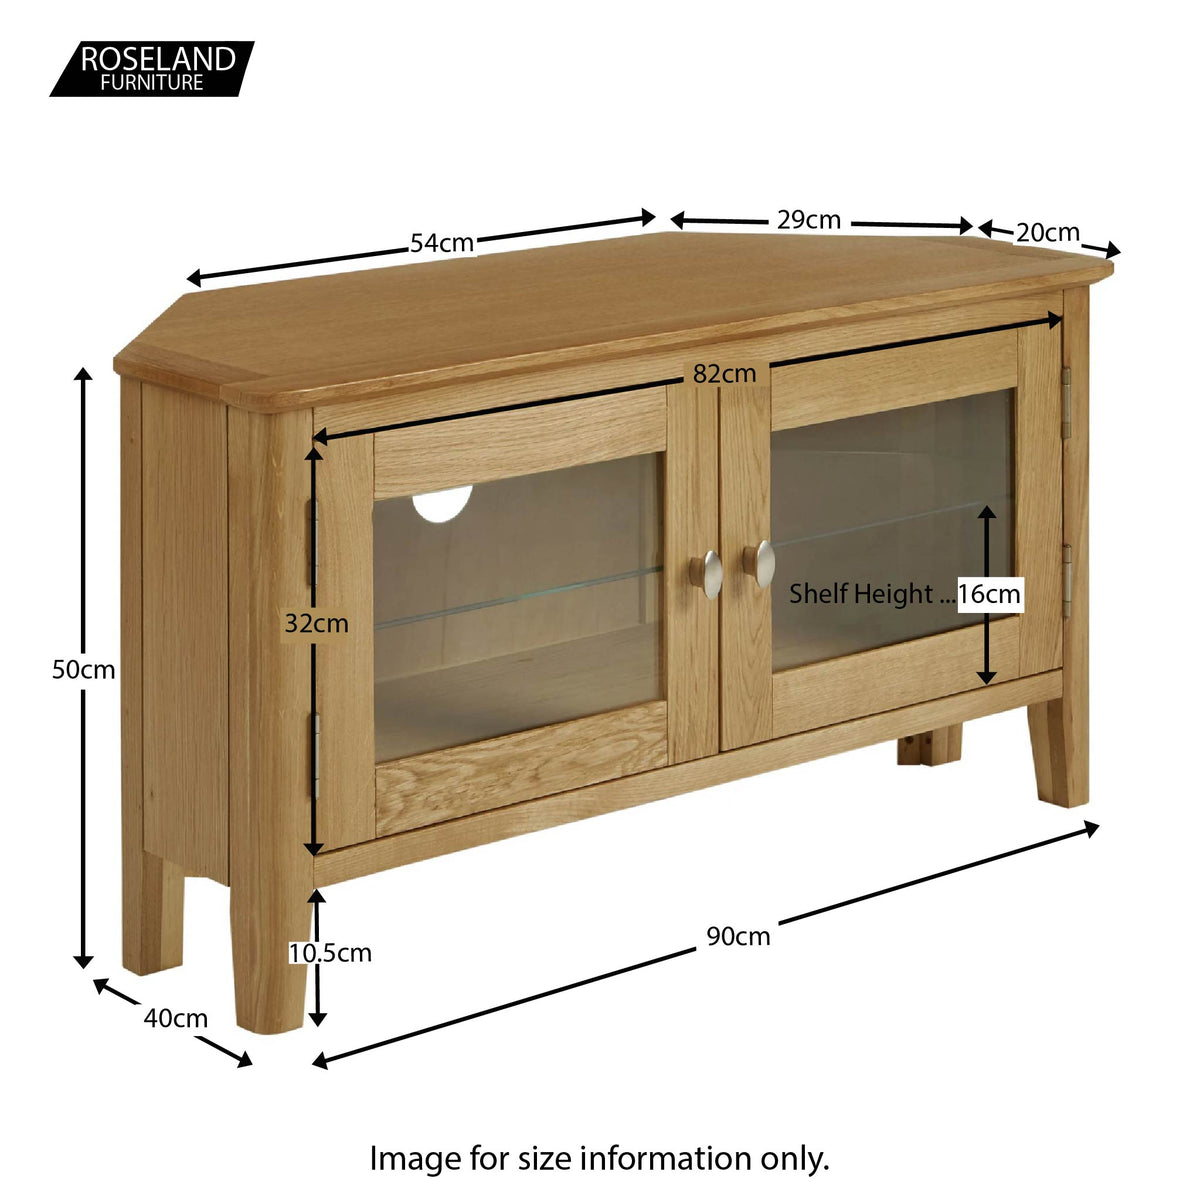 Alba Oak Corner TV Stand - Size guide